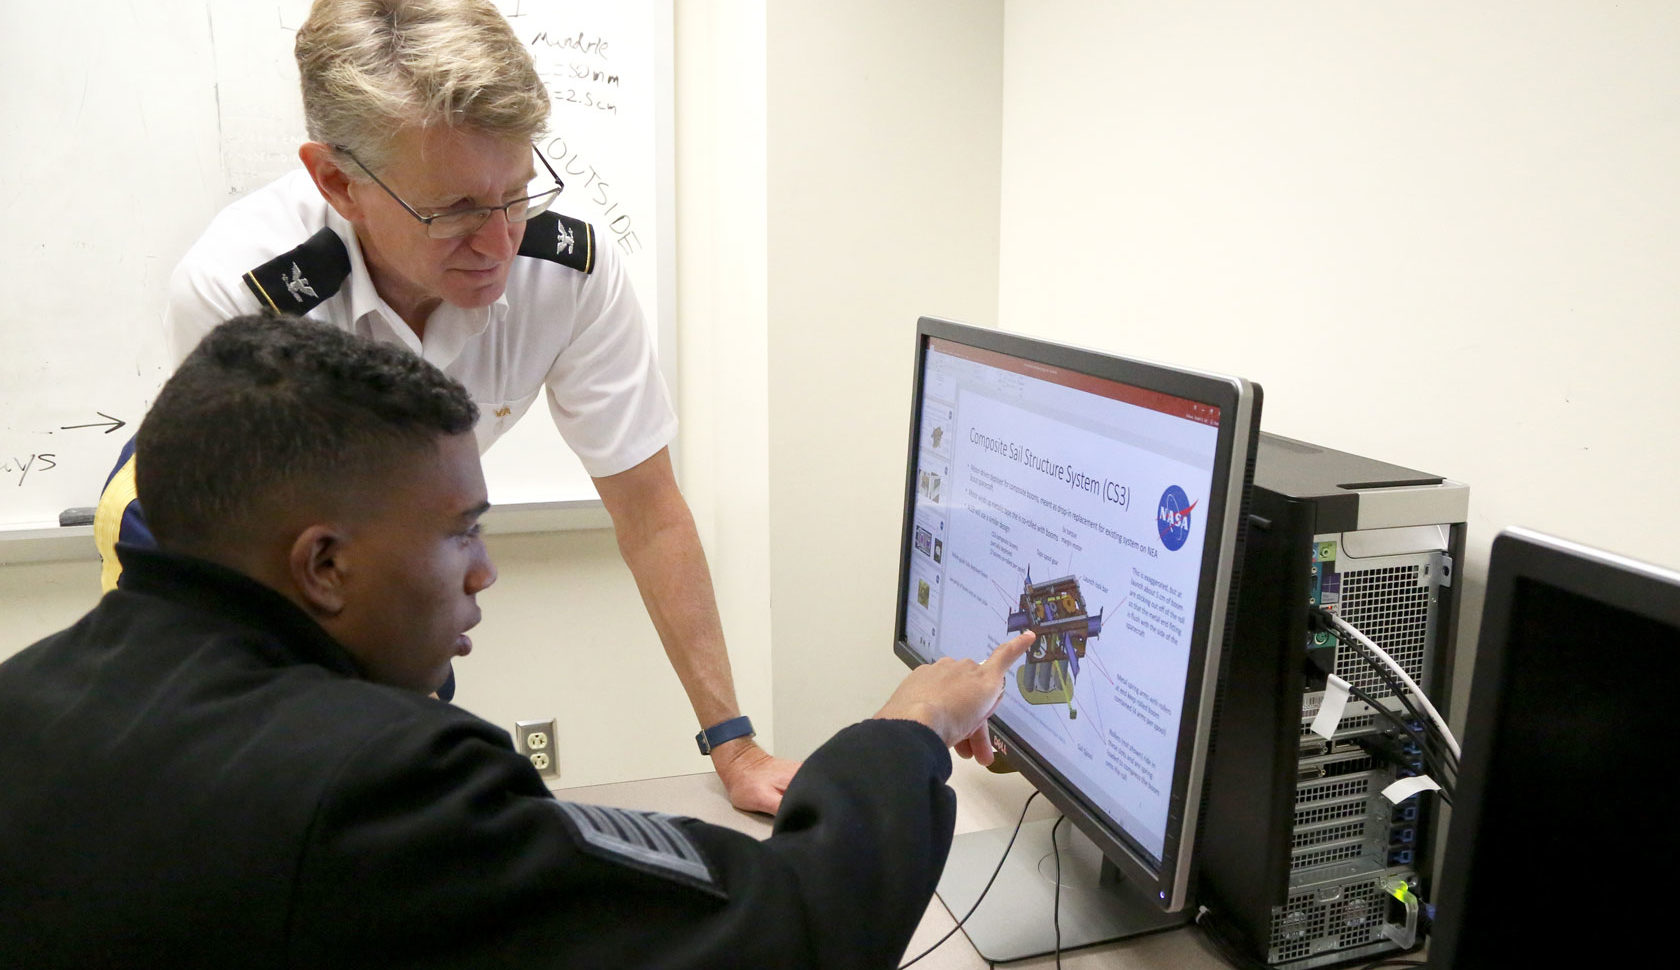 VMI Professor and student looking at computer screen